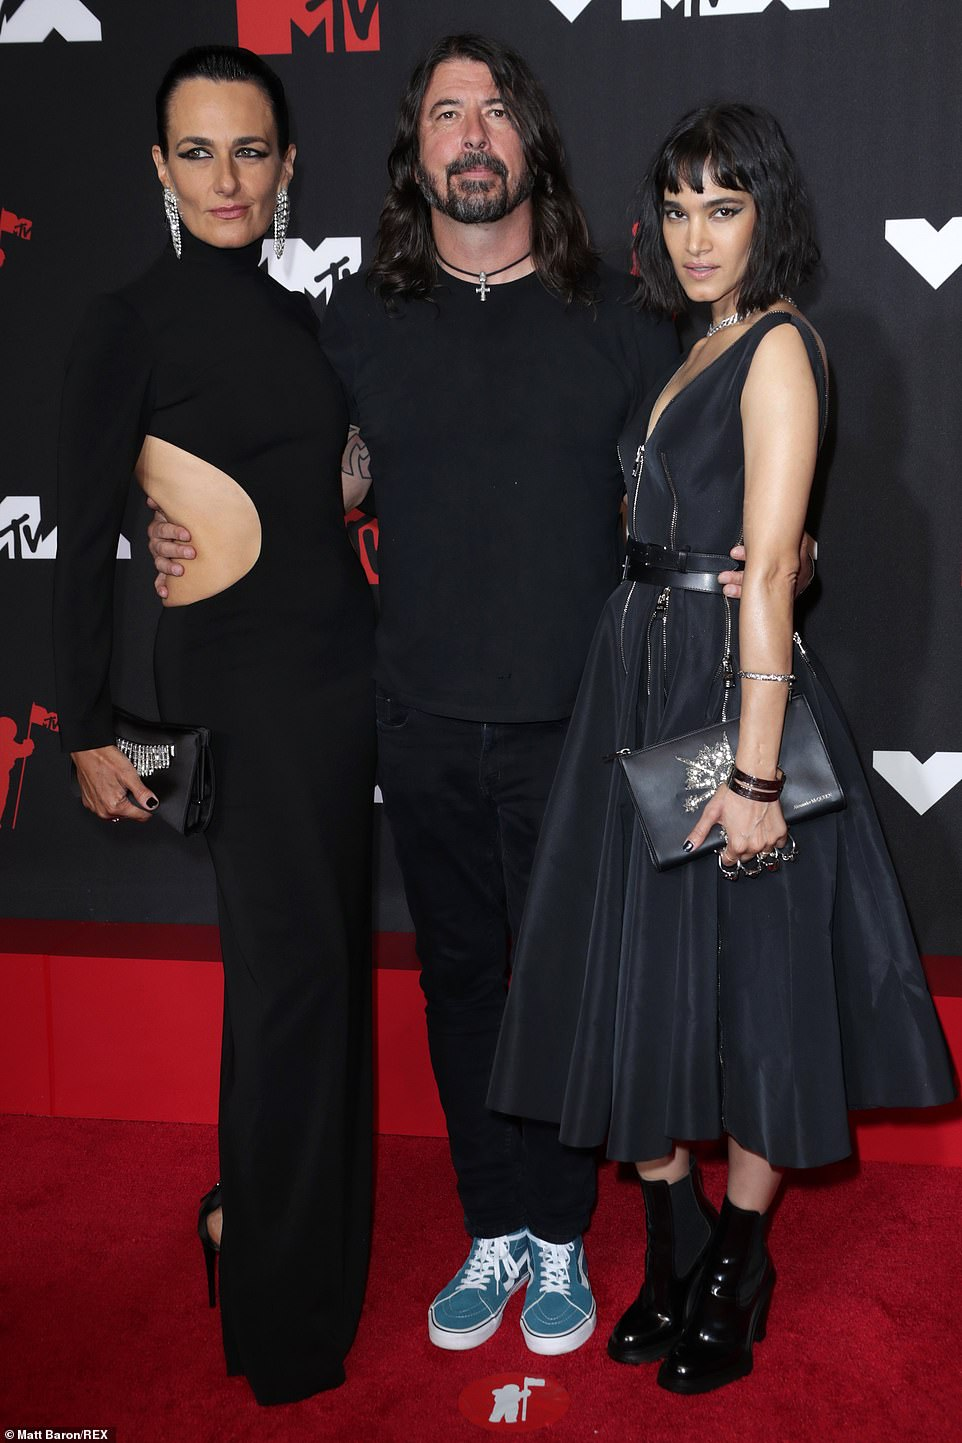 Family affair: Rocker Dave Grohl, who will receive the first-ever VMAs Global Icon award this year, brought a friend and also posed up with actress Sofia Boutella